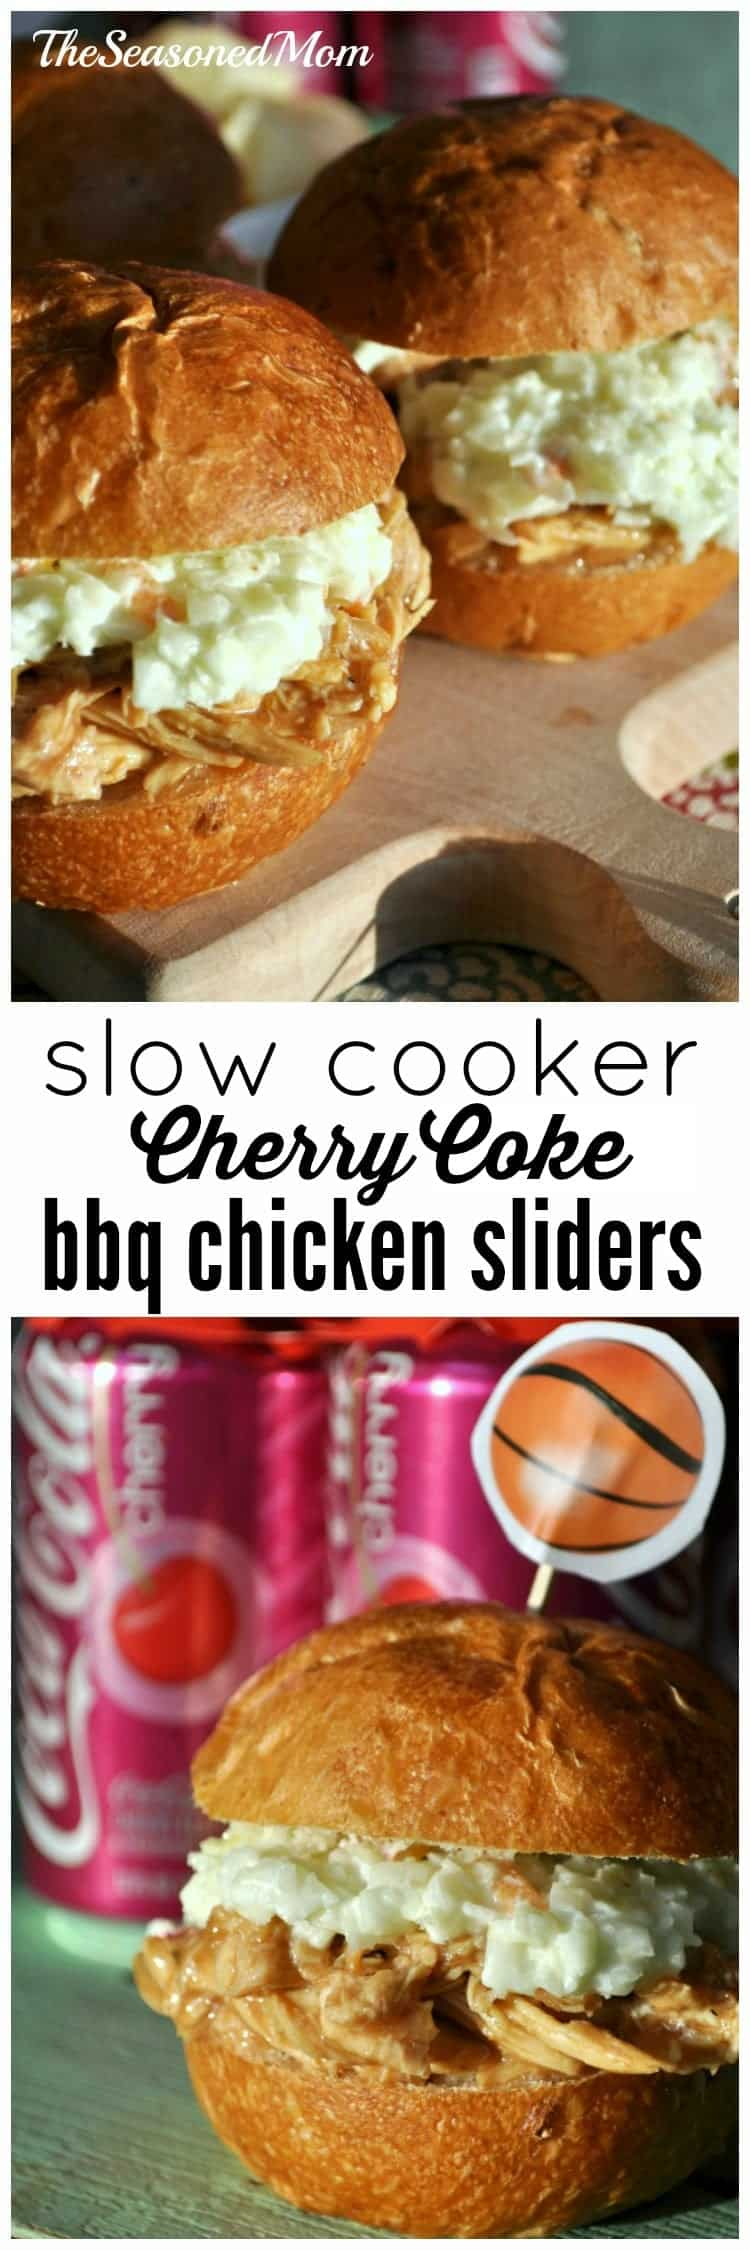 Slow Cooker Cherry Cola Barbecue Chicken Sliders